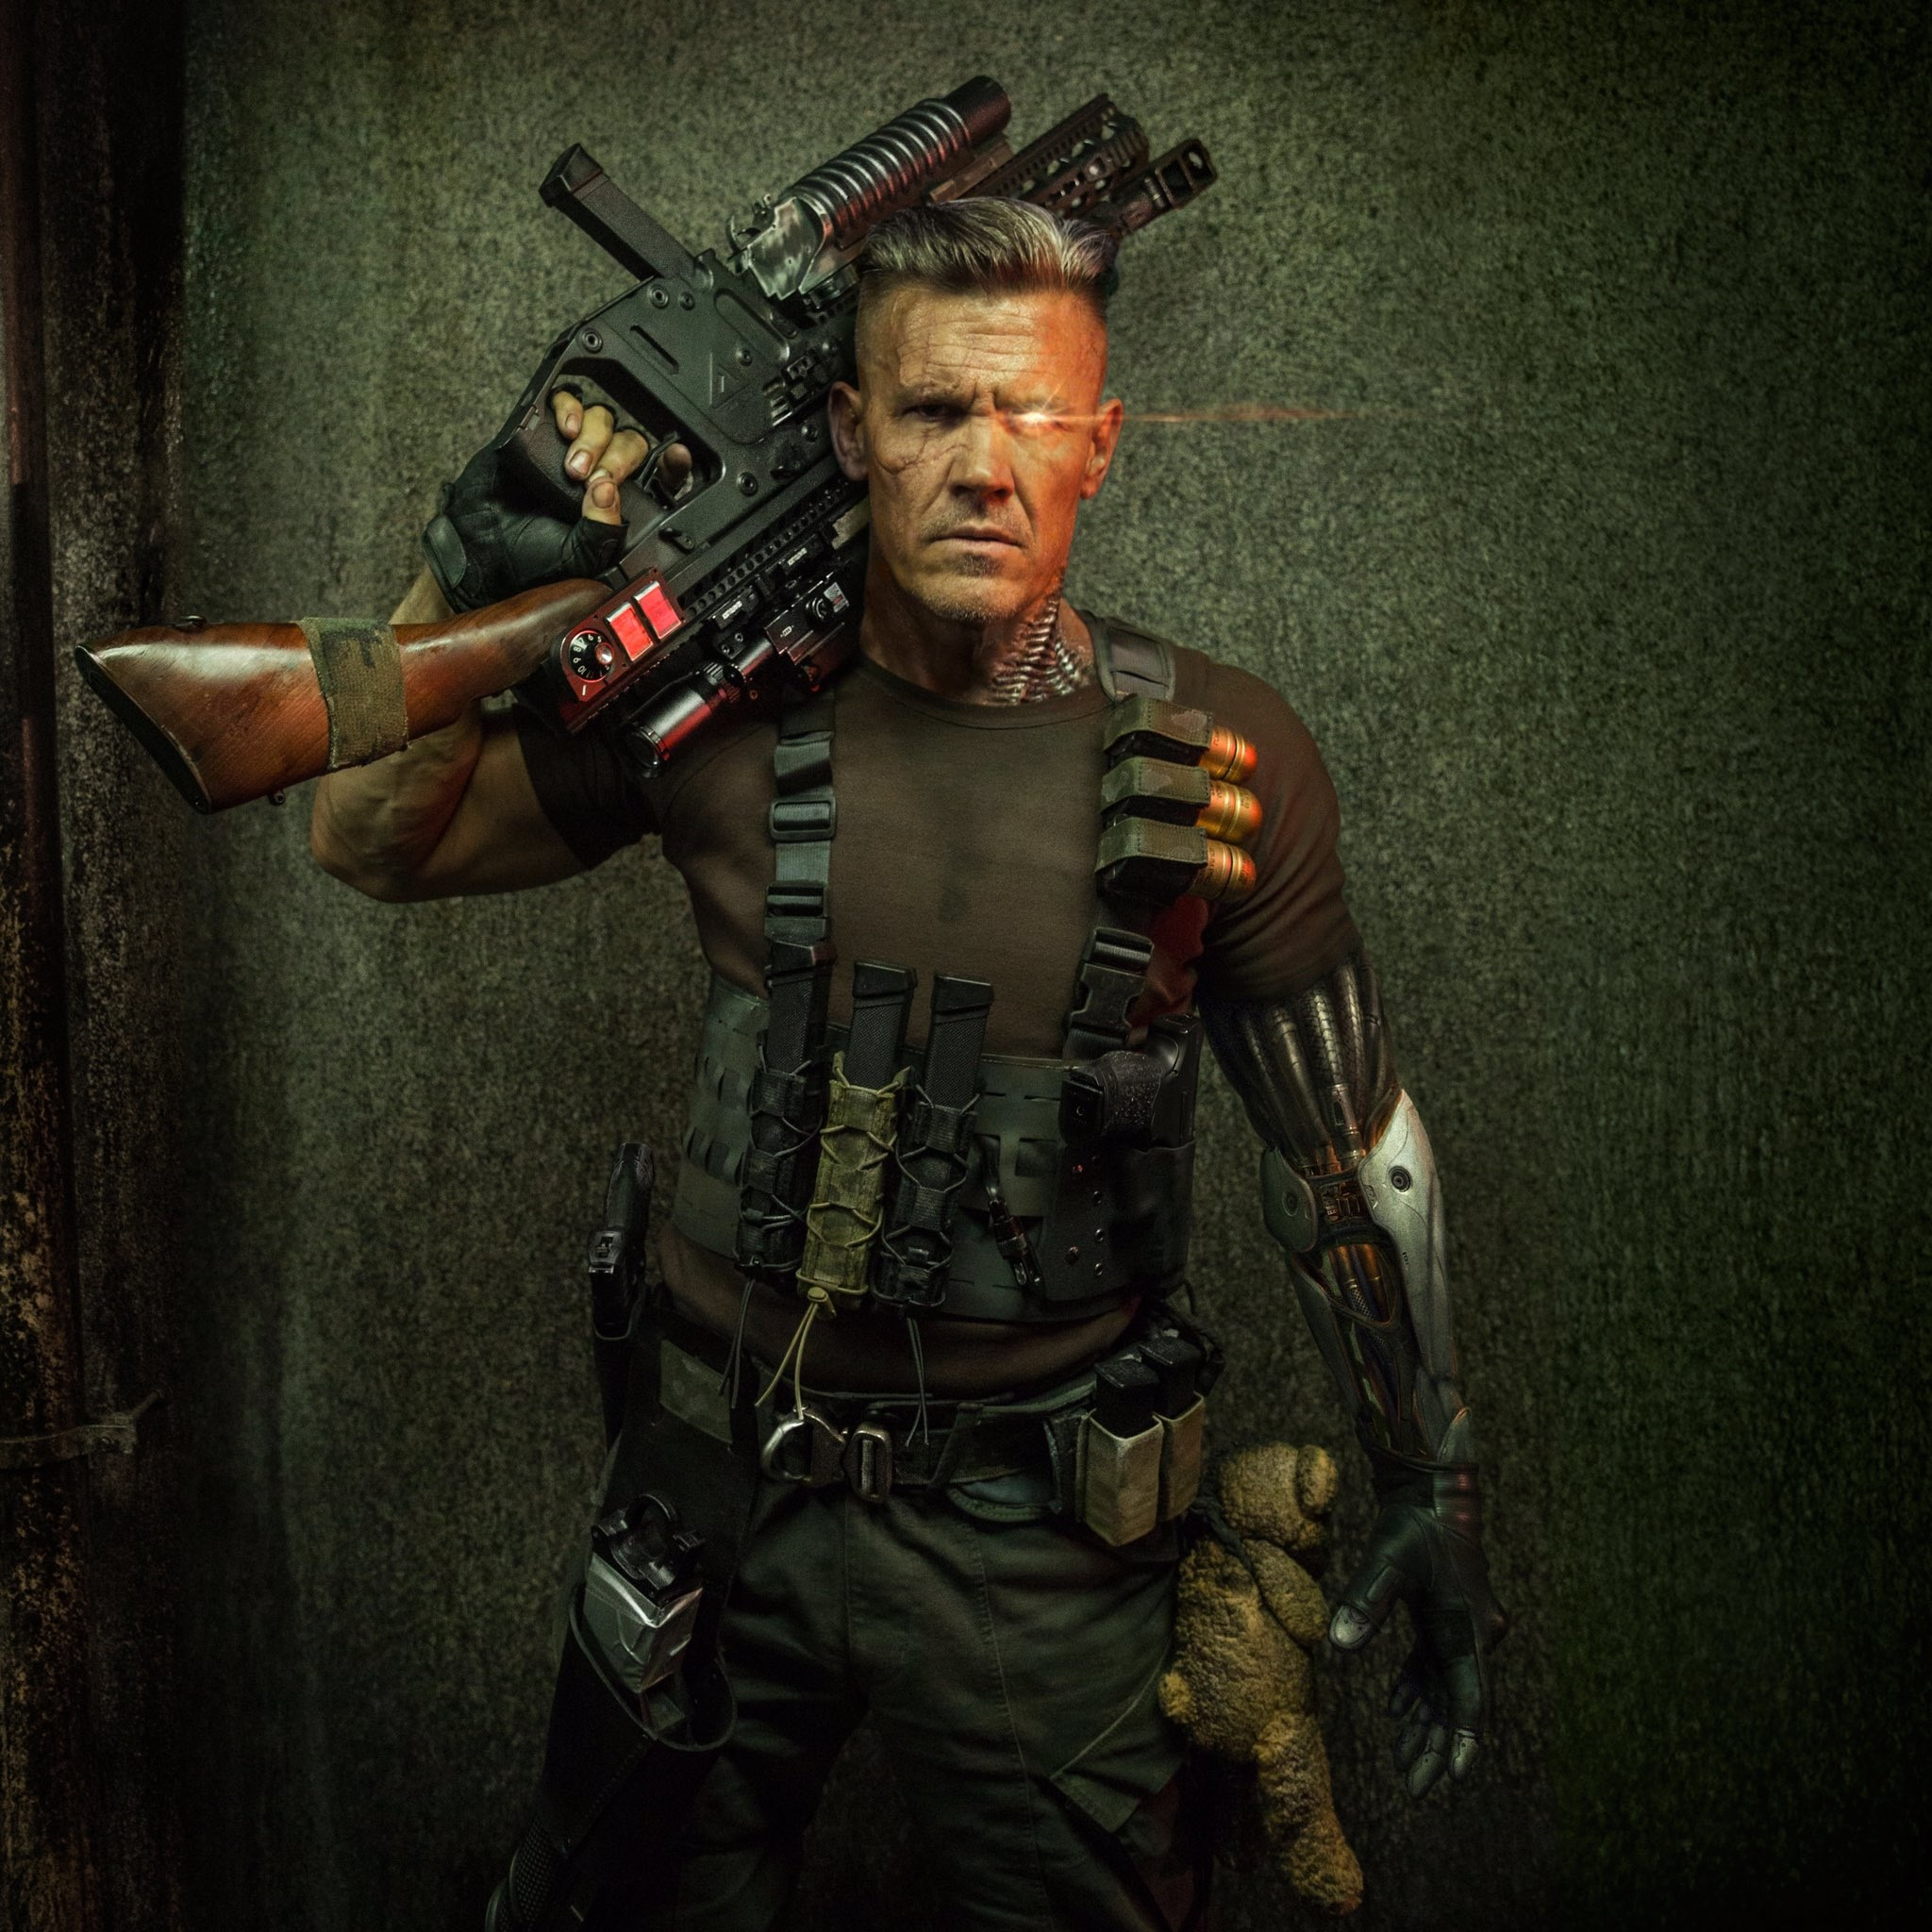 Another look at Josh Brolin's Cable